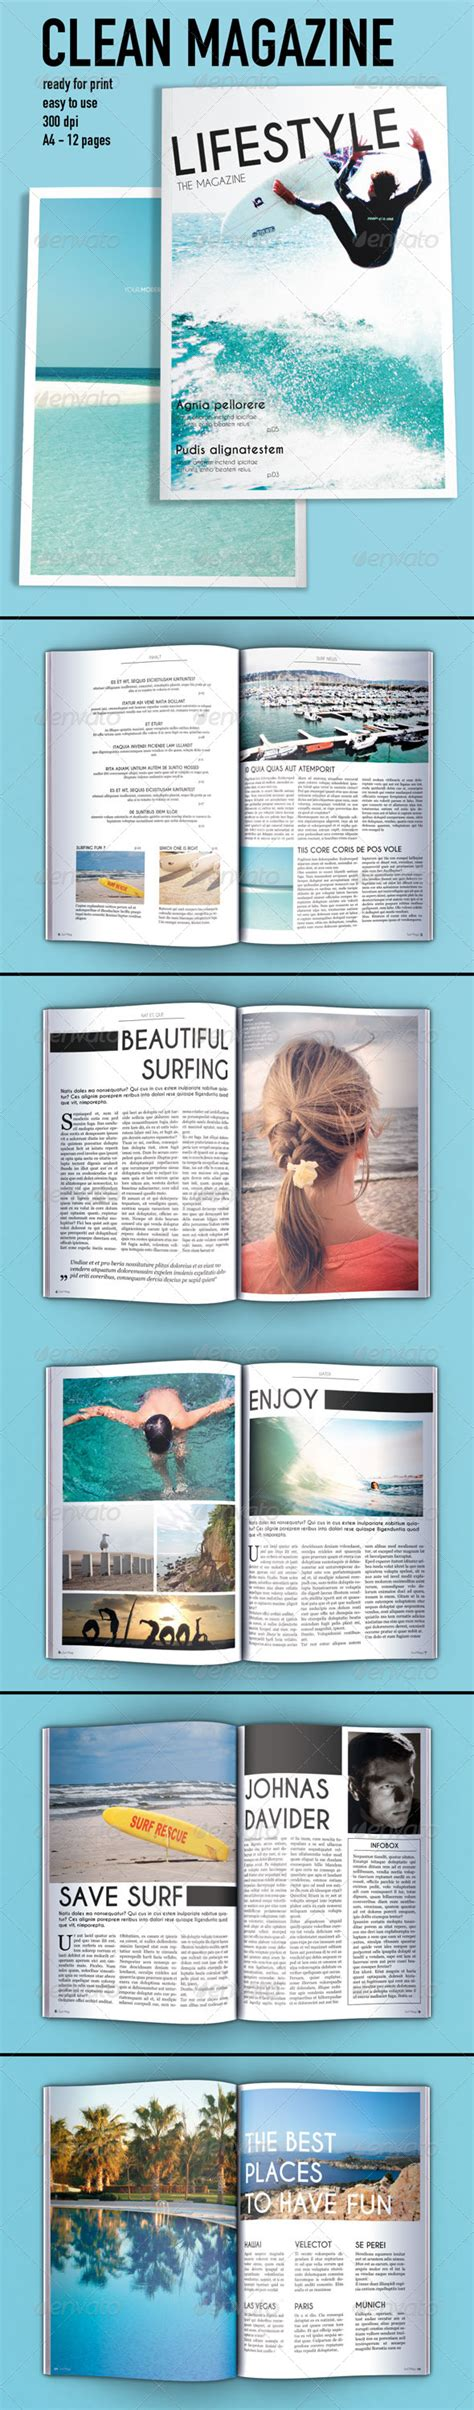 Magazine Layout Template Graphicriver | clean magazine layout template graphicriver